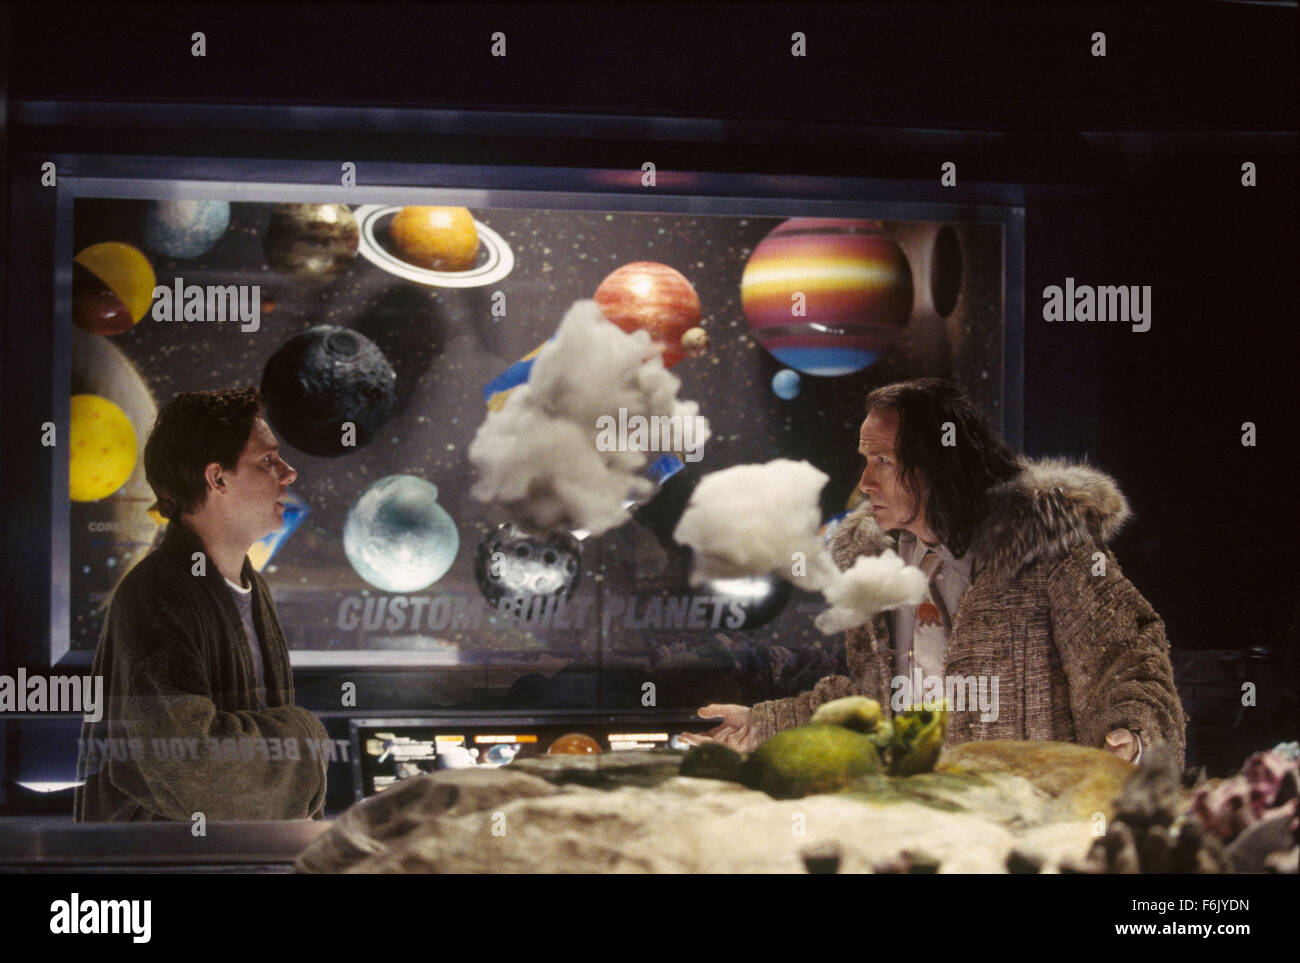 RELEASE DATE: April 29, 2005. MOVIE TITLE: The Hitchhiker's Guide to the Galaxy. STUDIO: Touchstone Pictures. PLOT: Stock Photo